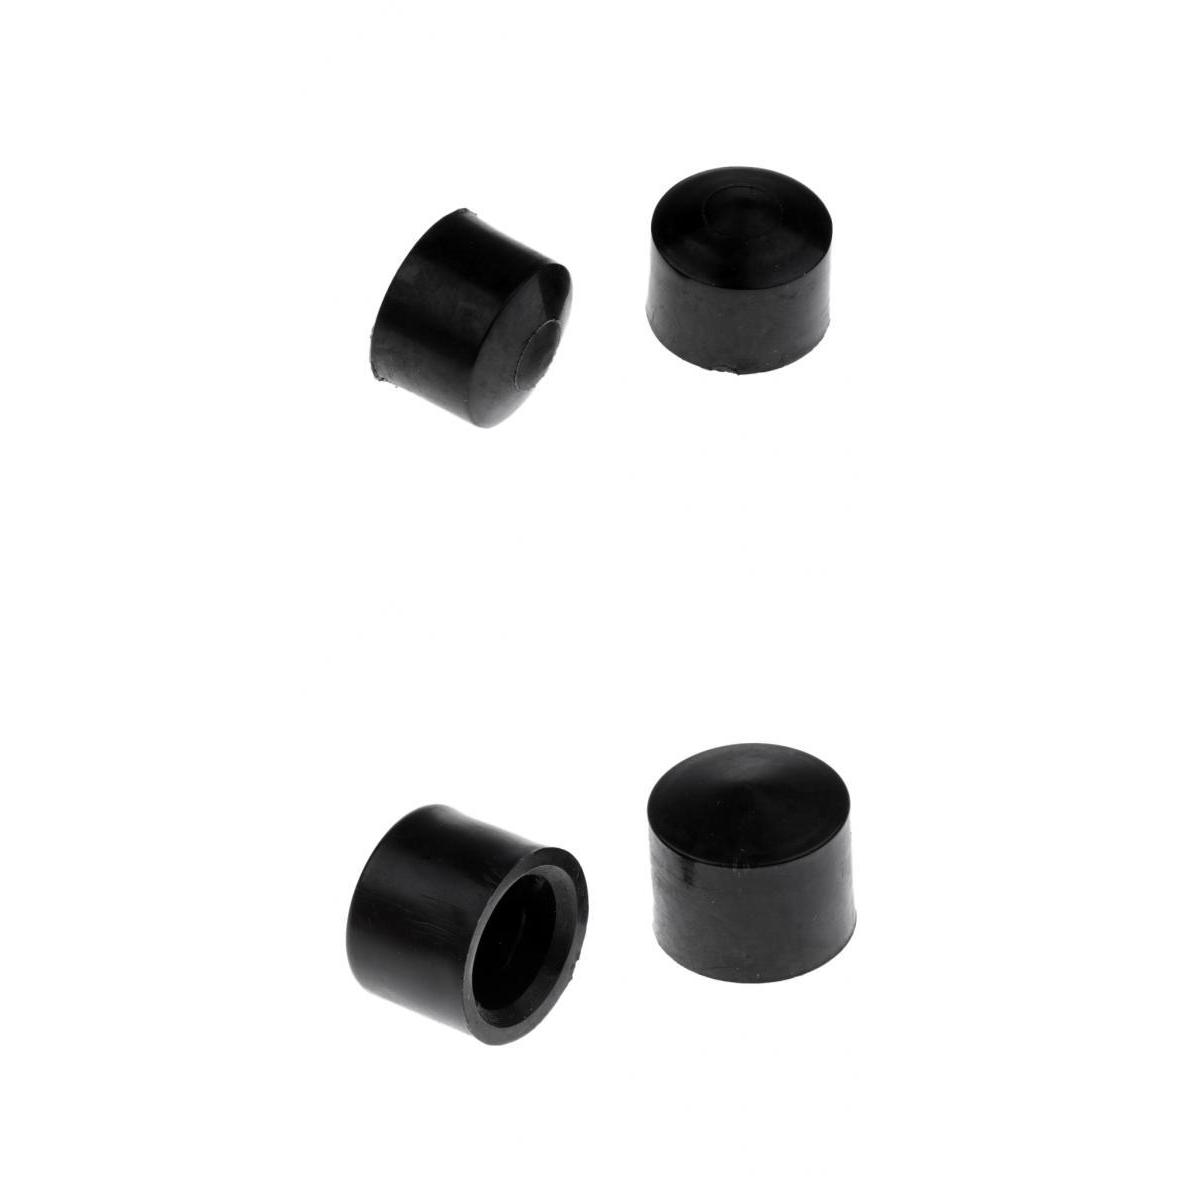 4x High Quality Rubber Skateboard Truck Replacement Pivot Cups Accessories 5 Inch + 7 Inch